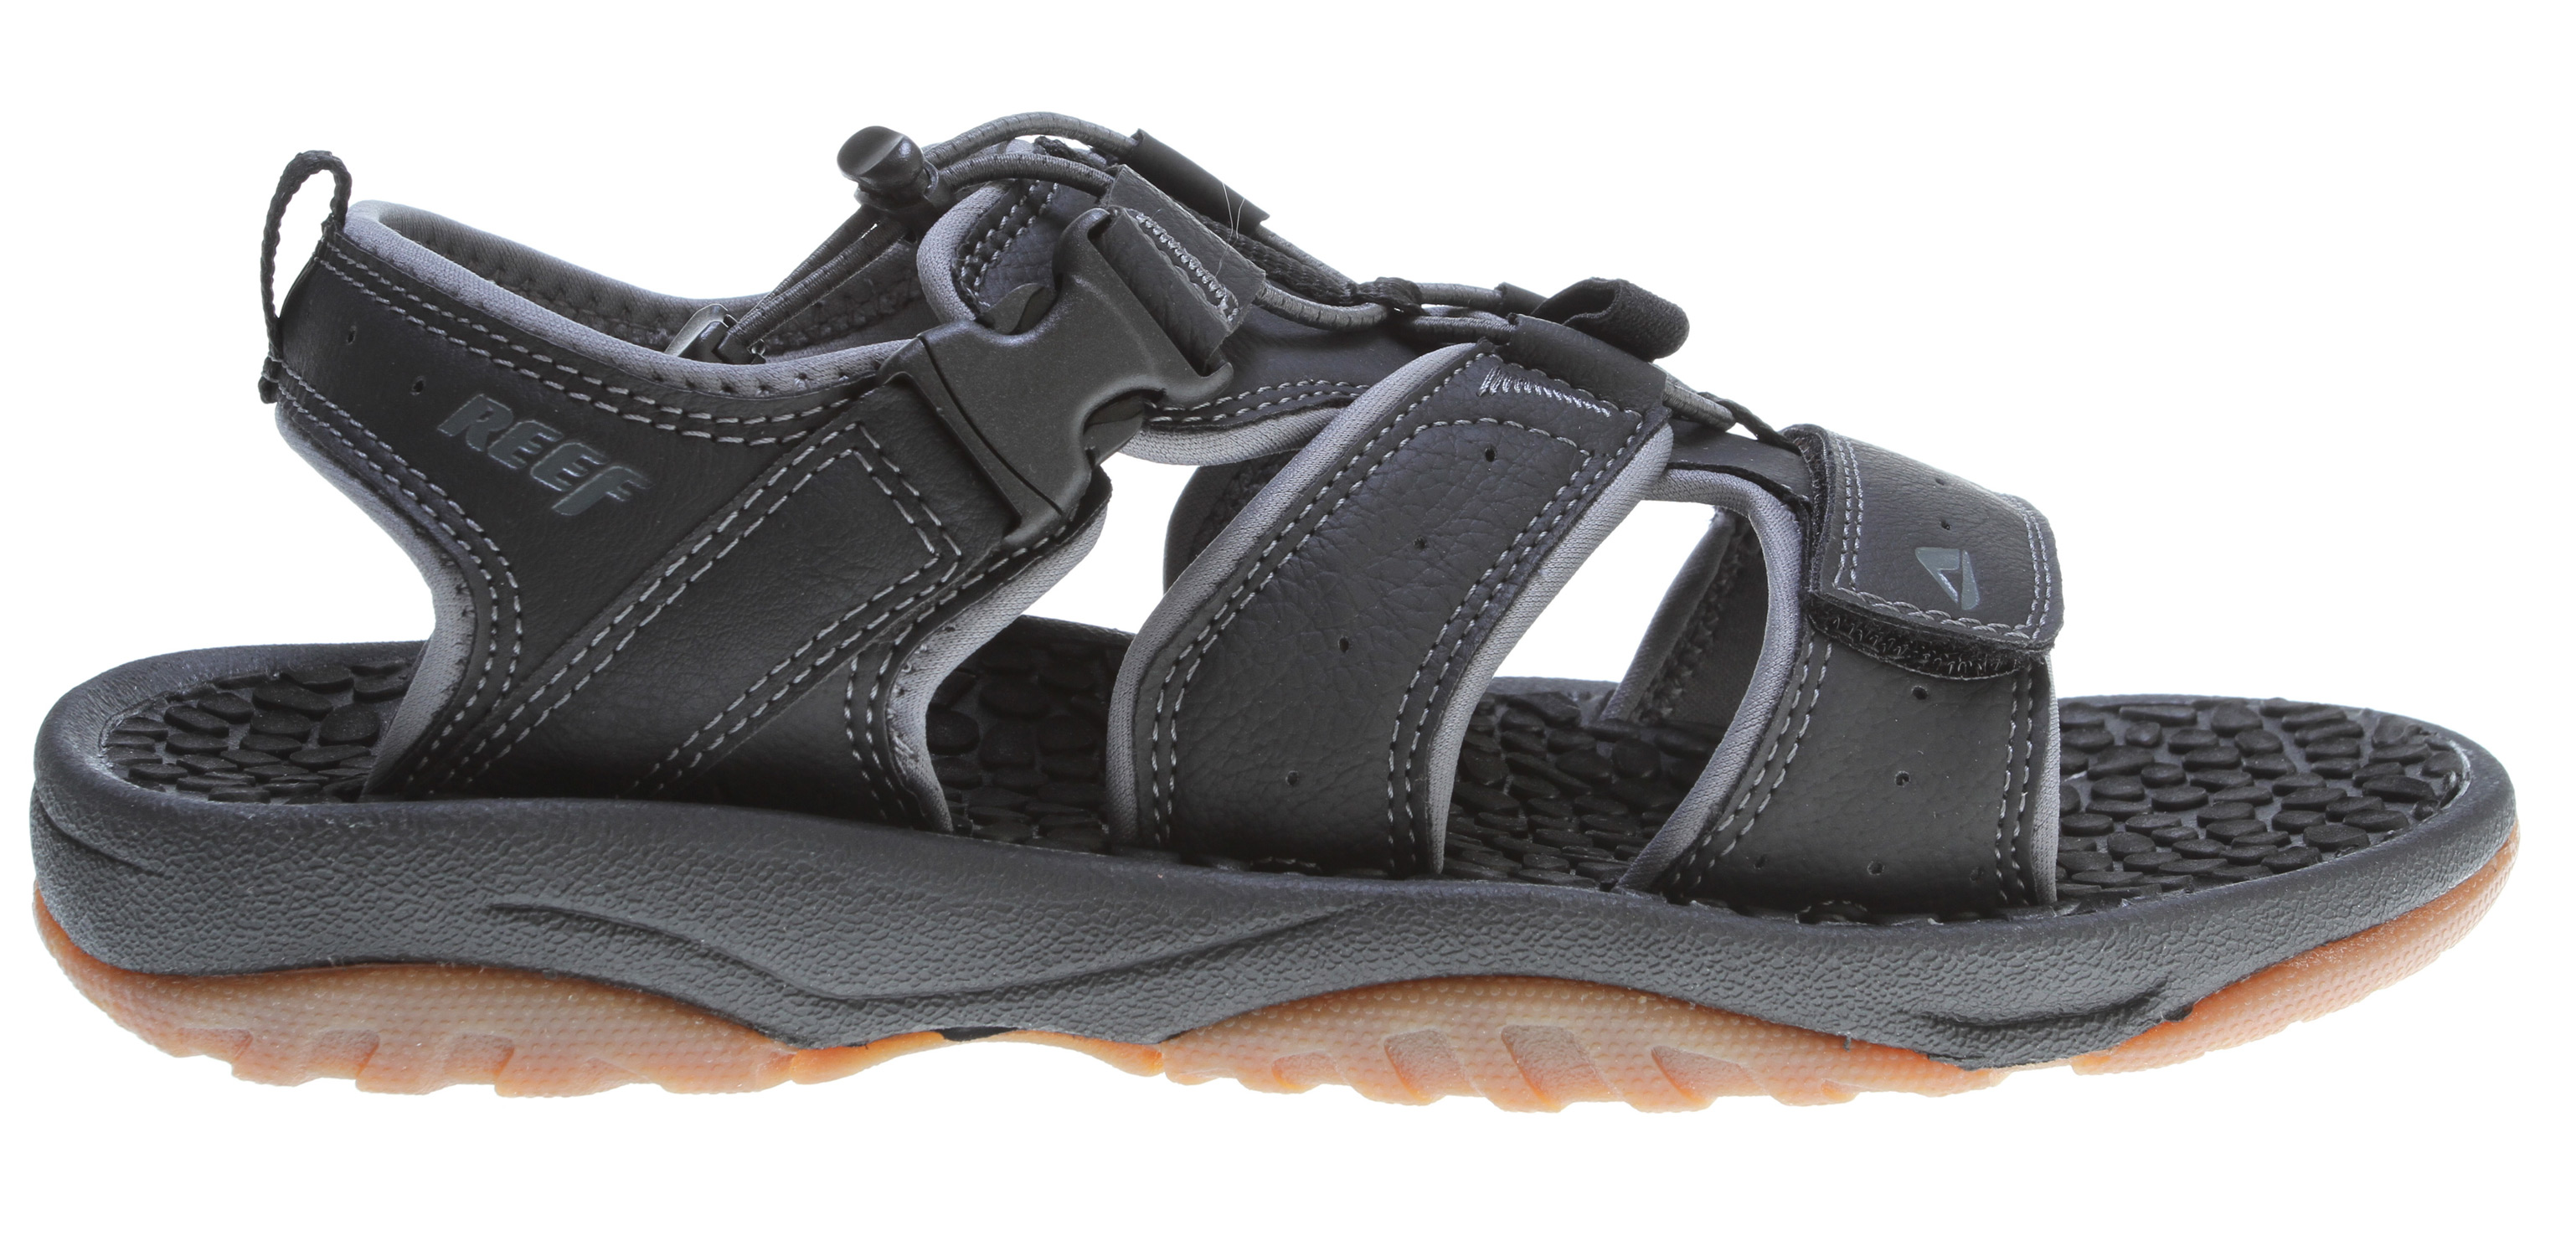 Surf Key Features of the Reef Mundaka X4 Sandals: Comfortable, water friendly synthetic nubuck upper Adjustable in-step strap closure system for quick entry quick dry upper synthetic materials for minimal water retention thermo sliced wax texture footbed for comfort and breathability Compression molded eva midsole Durable and grippy rubber outsole - $48.95